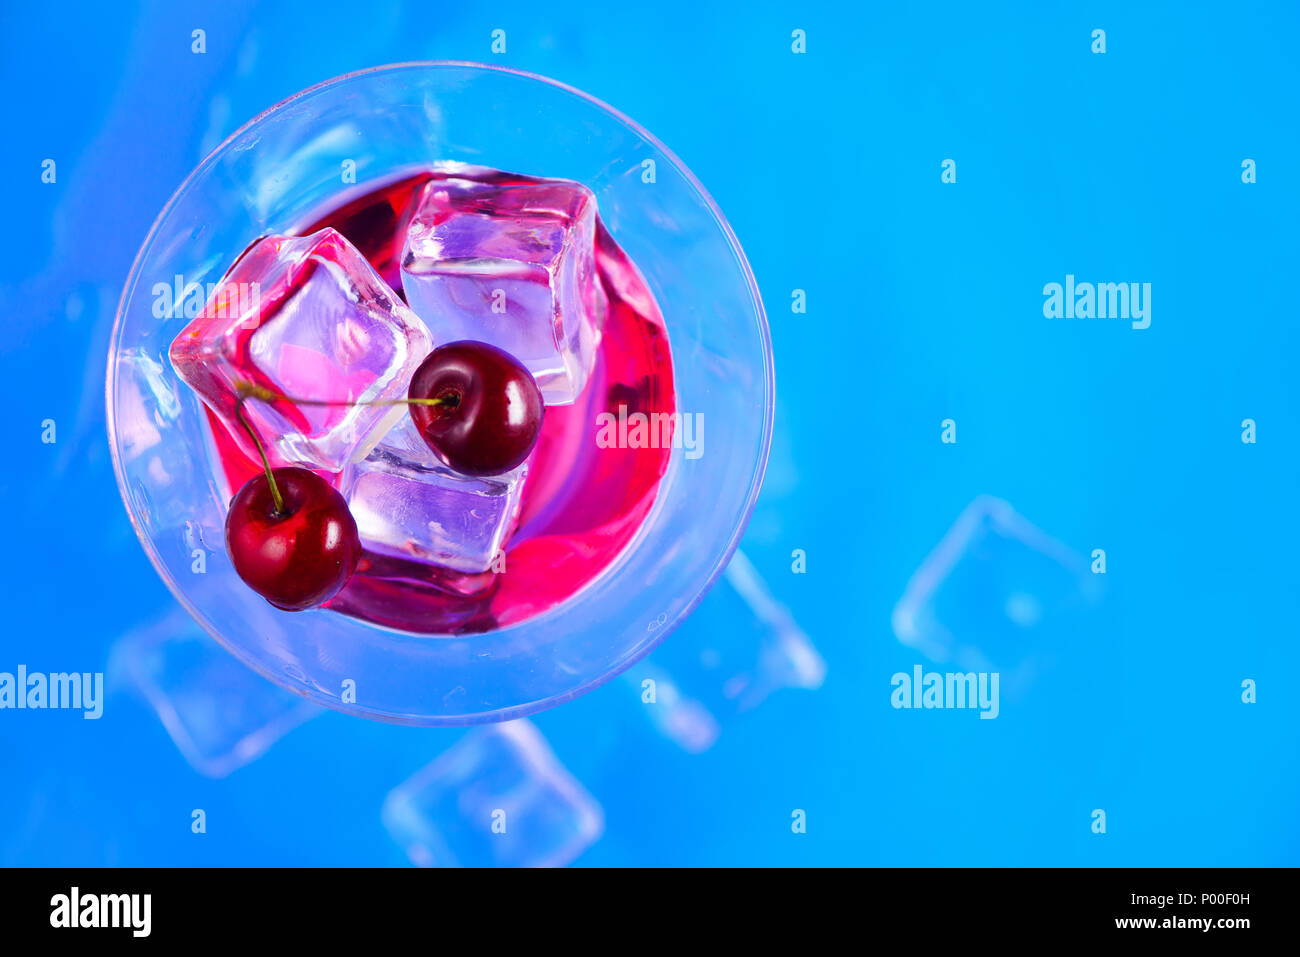 Cherry liquor cocktail glass from above on a blue background. Refreshing cold drink flat lay with copy space - Stock Image